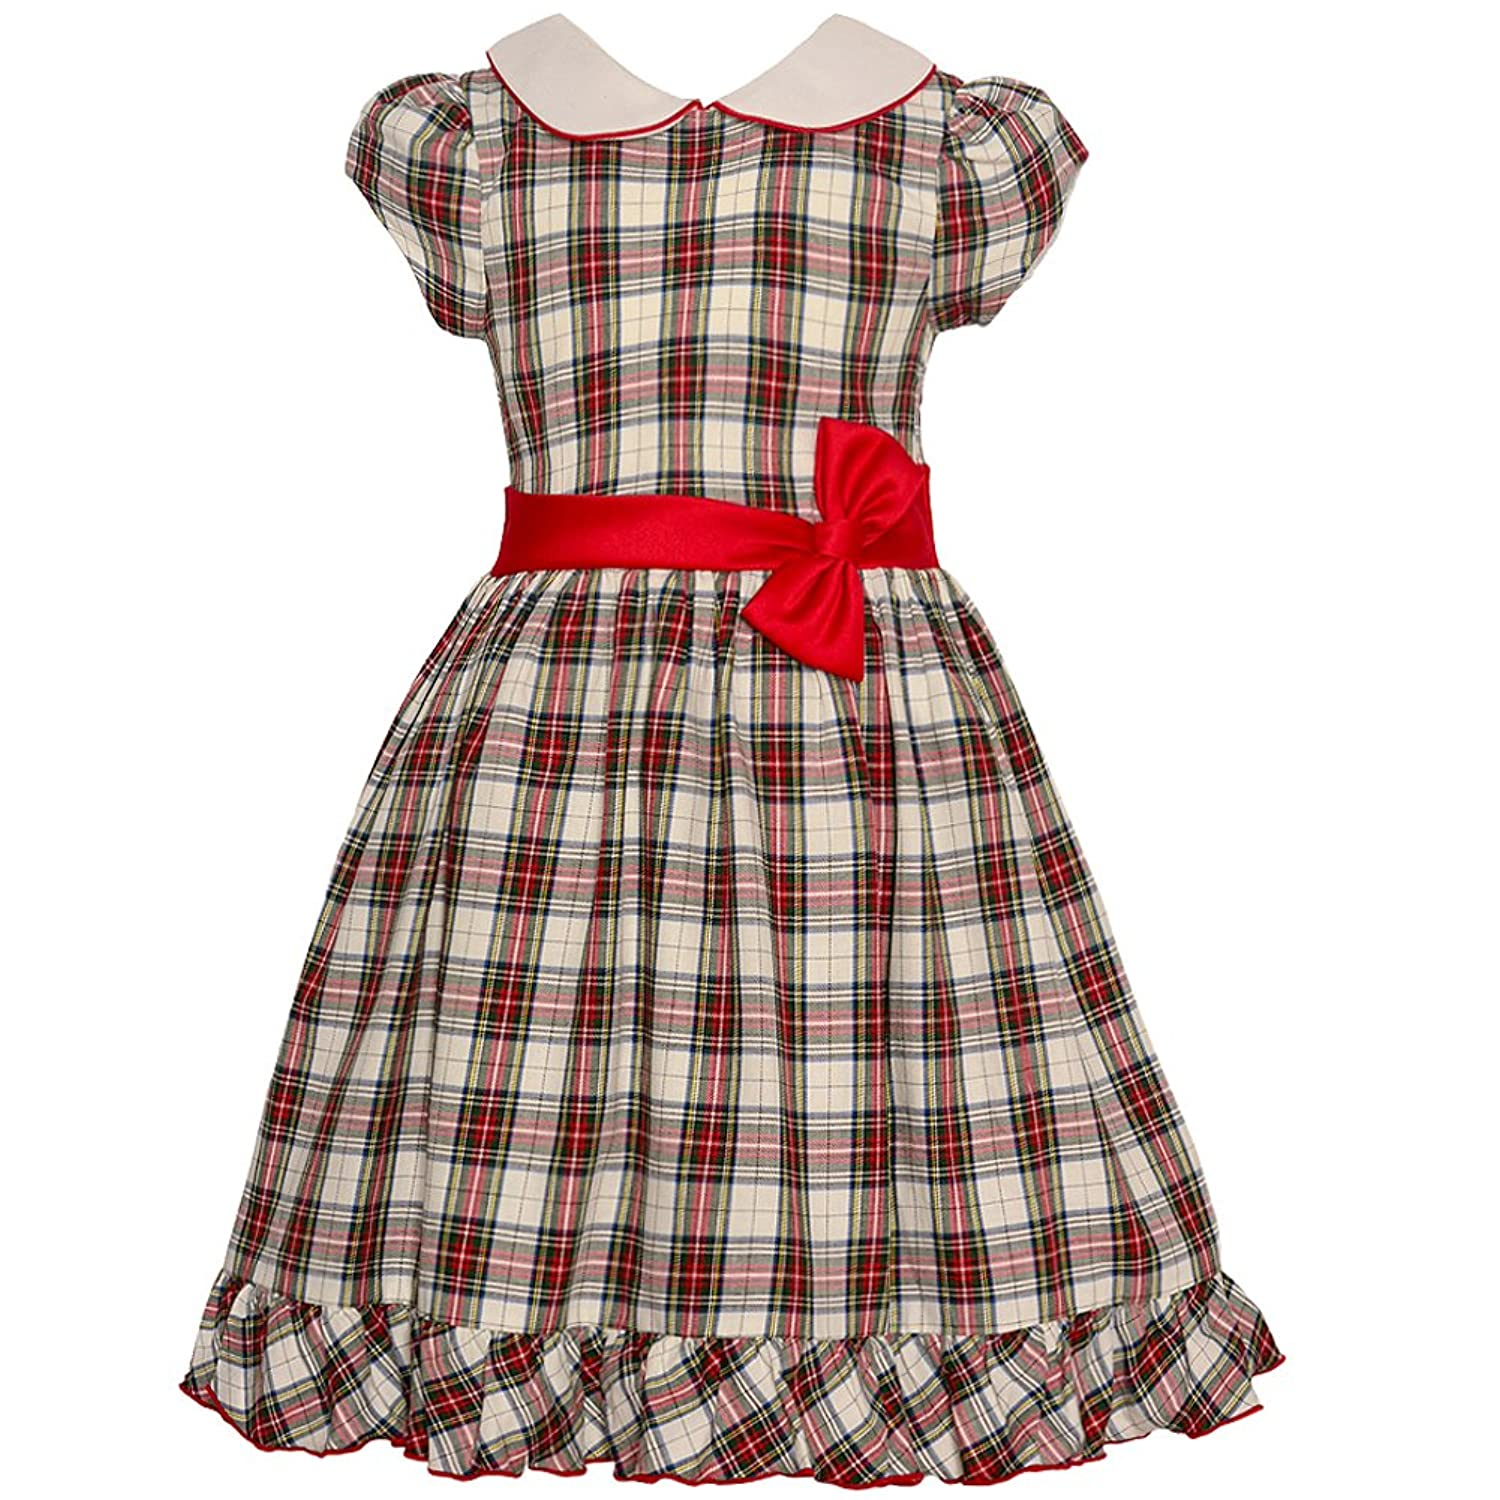 1930s Childrens Fashion: Girls, Boys, Toddler, Baby Costumes Bonnie Jean Girls Collared Cotton Dress $39.20 AT vintagedancer.com